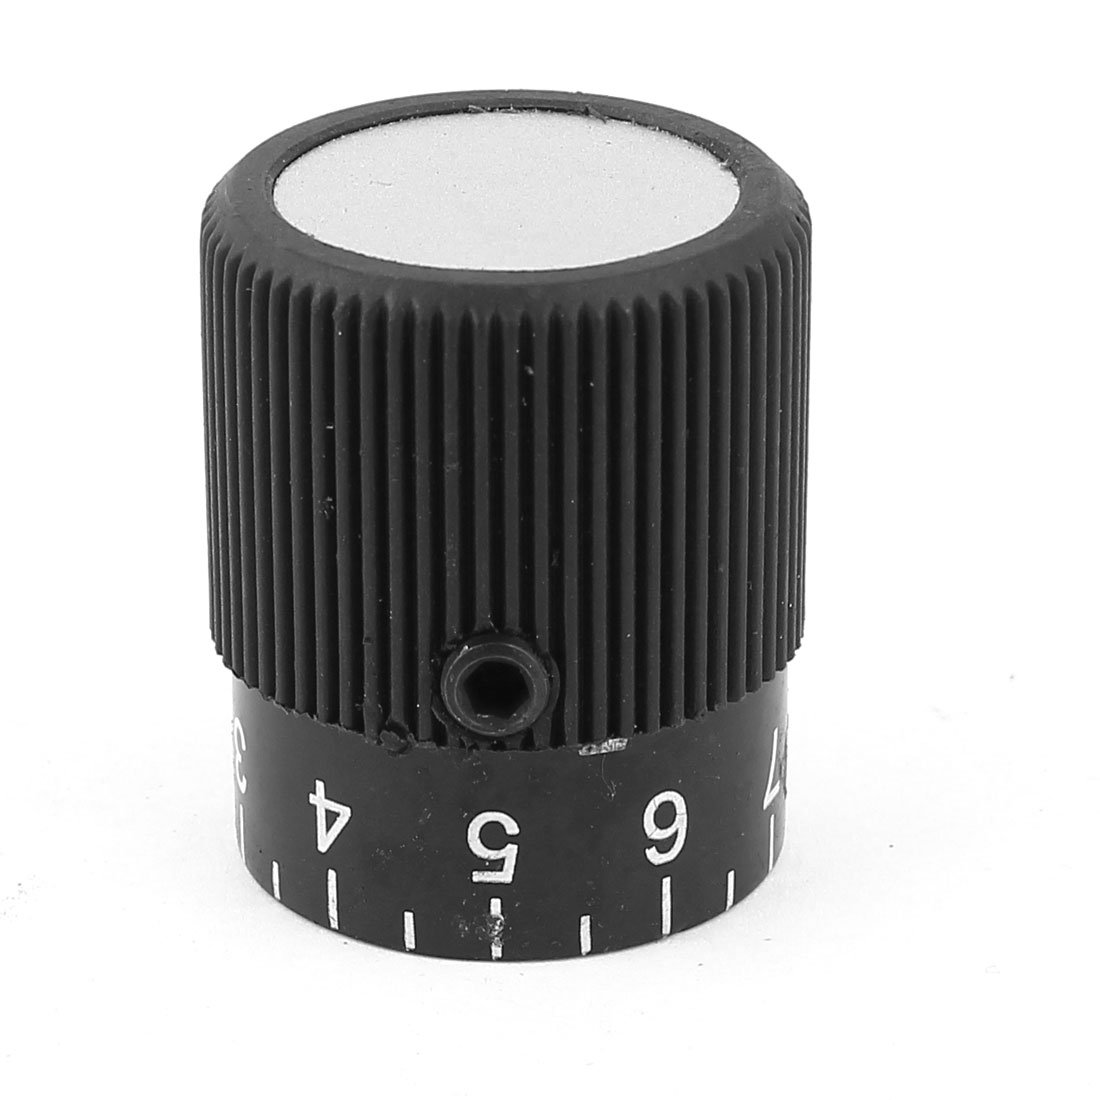 Mechanical 8mm Hole Dia 0-9 Scale 32mm Diameter Knurled Control Knob